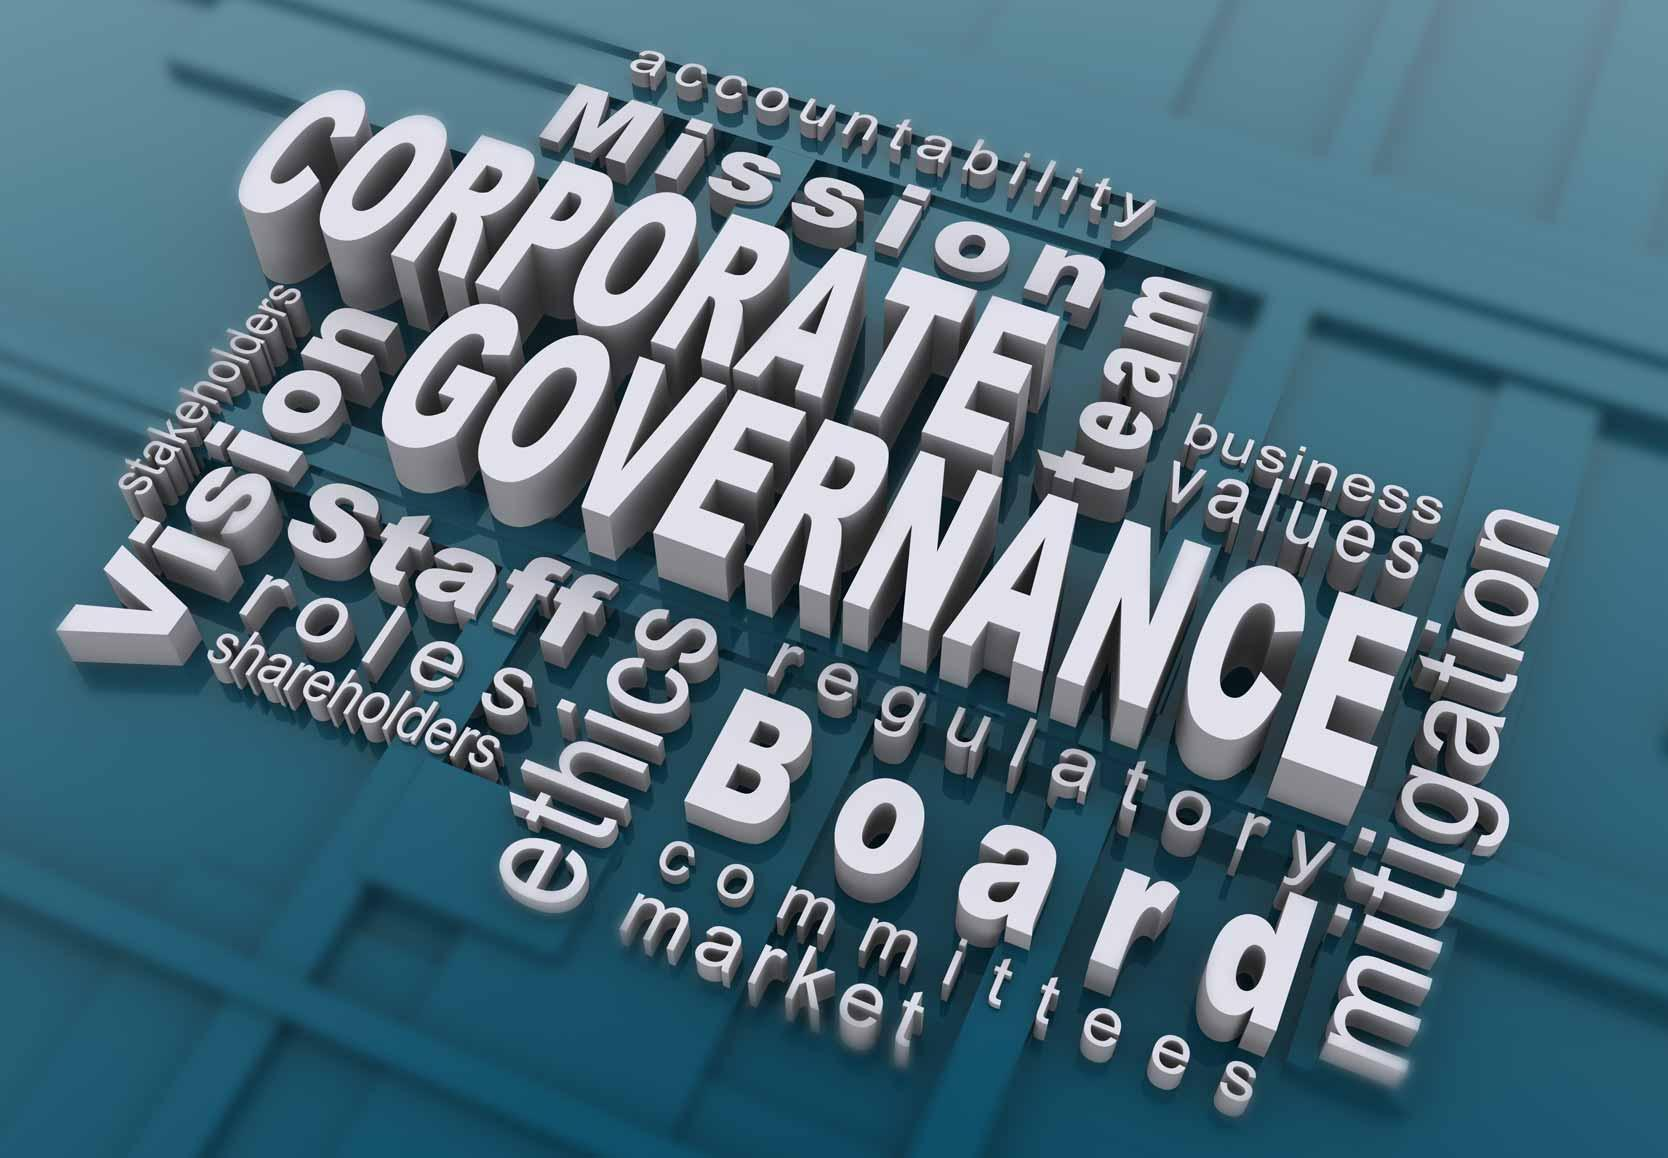 corporate governance Corporate governance at hkex we are committed to the highest standards of corporate governance and recognise that good governance is pivotal in helping the business to deliver its strategies whilst generating sustainable shareholder value and meeting its obligations towards shareholders and other stakeholders.